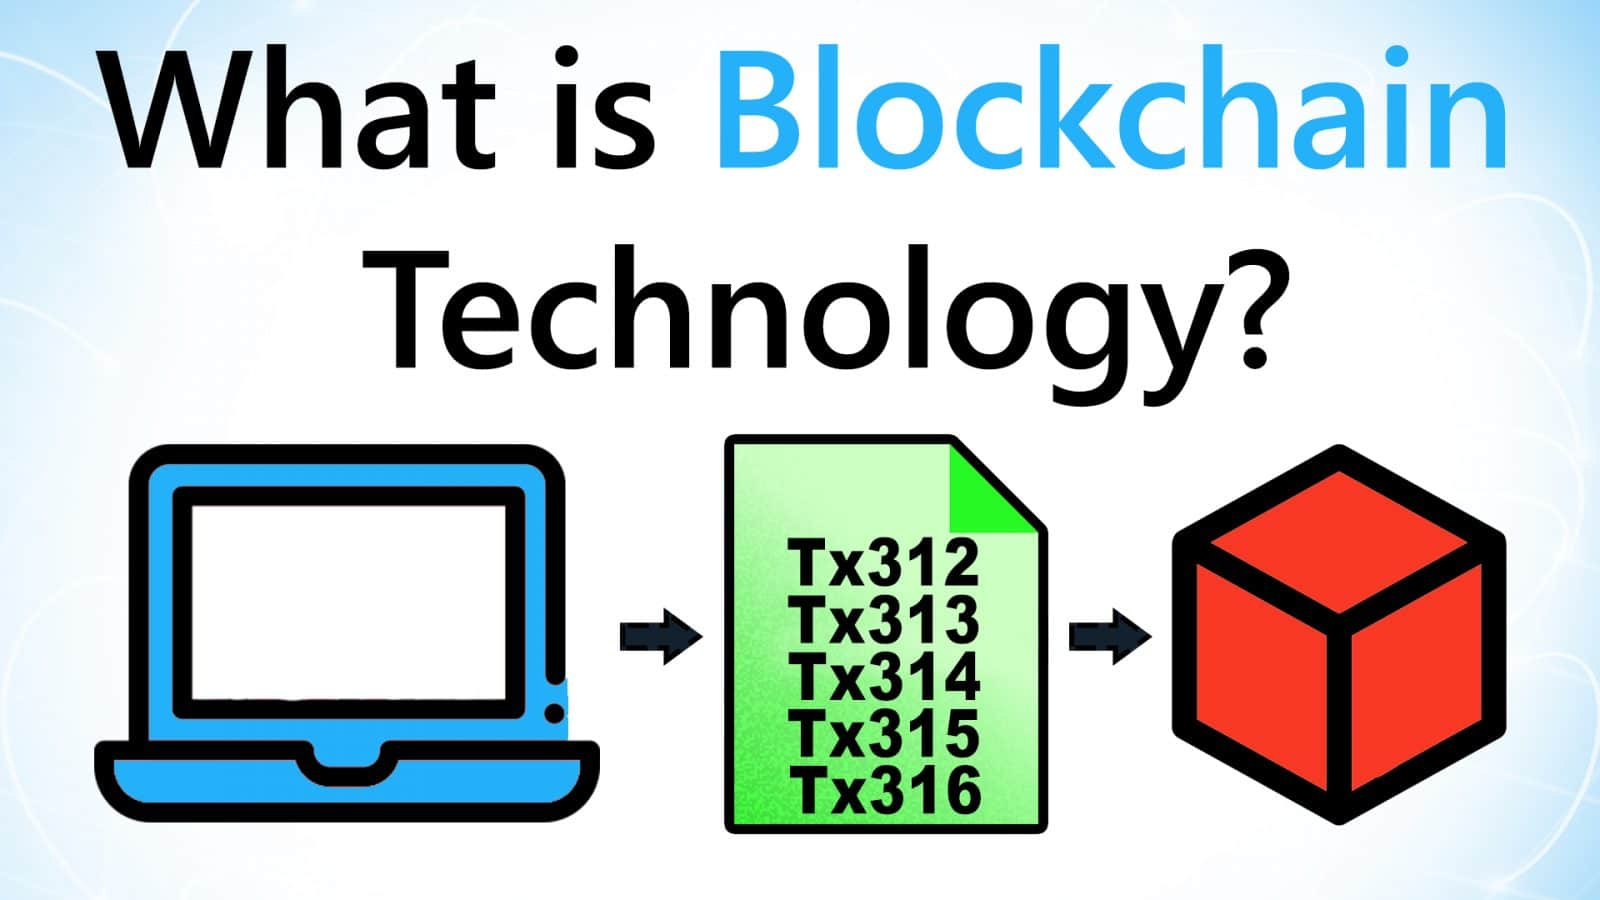 Video Guide: What is Blockchain Technology?